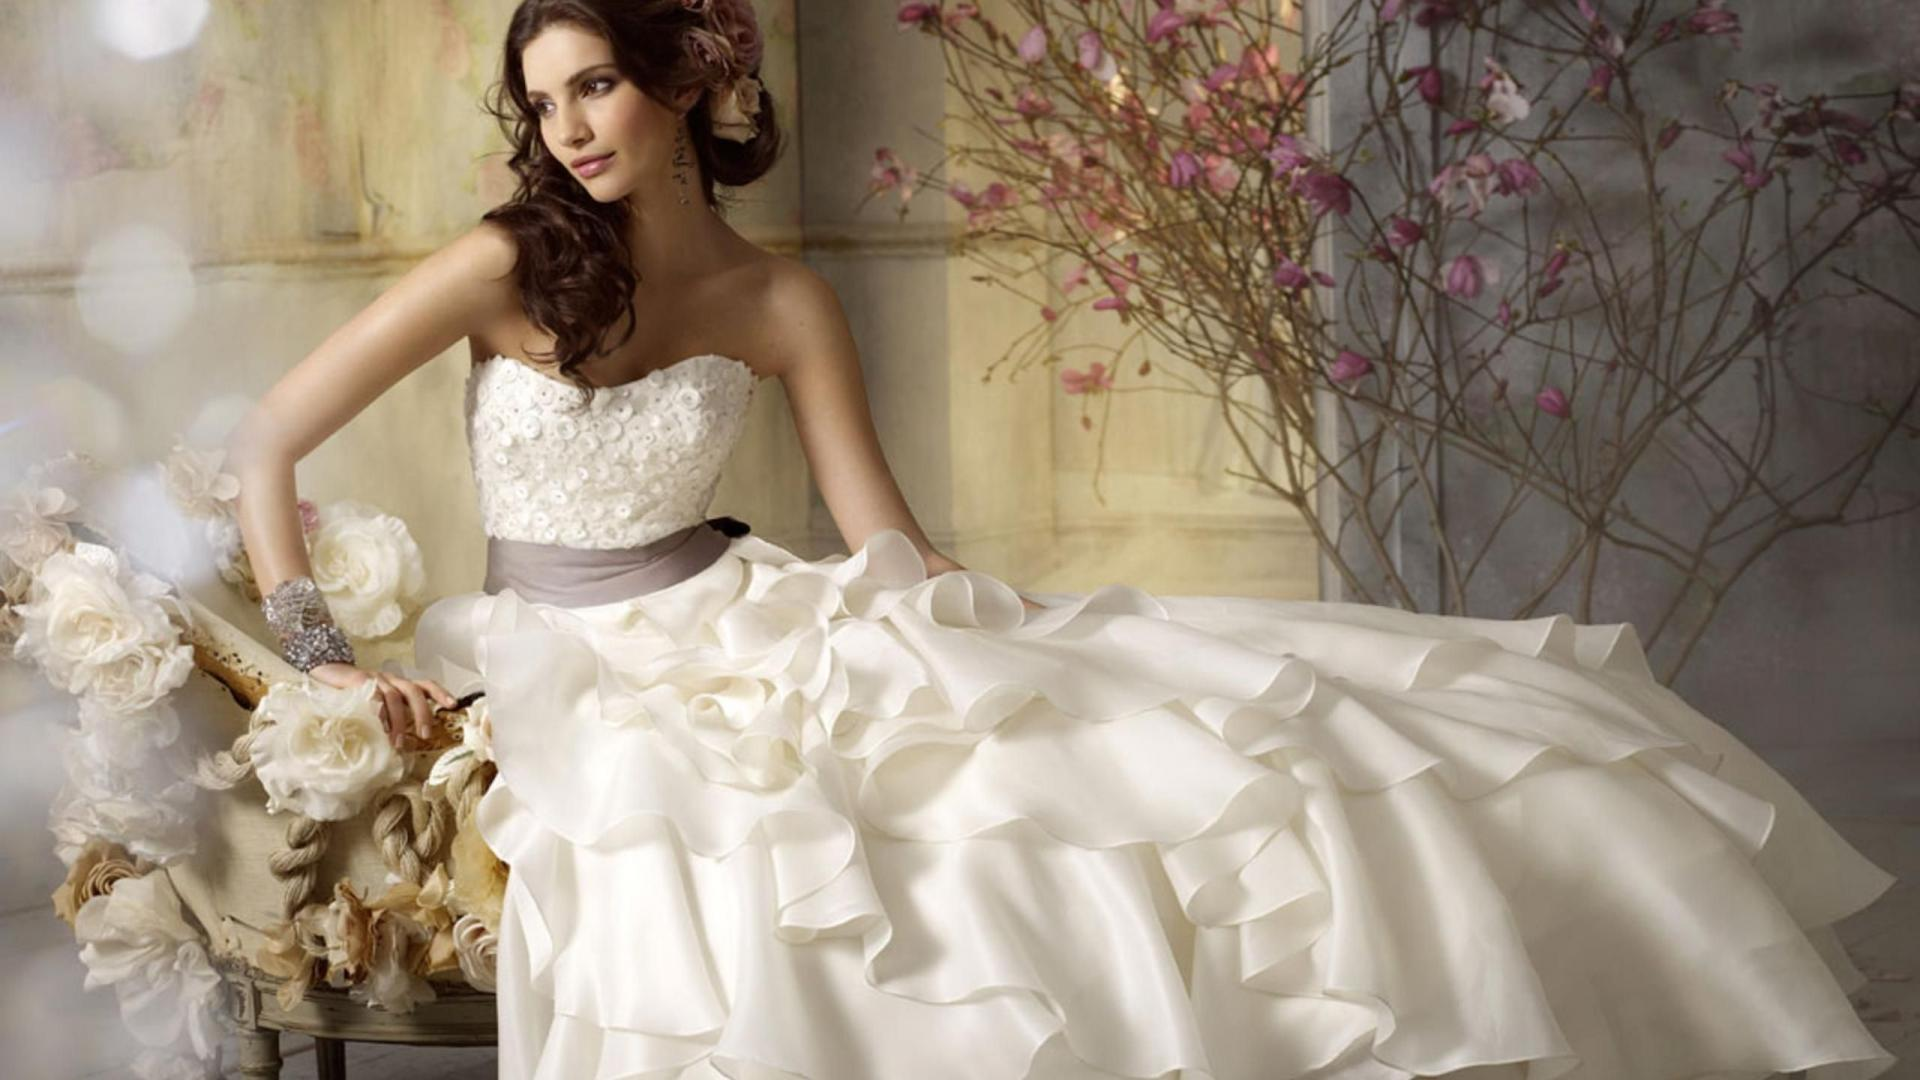 Wedding Dress Wallpaper Wallpapersafari